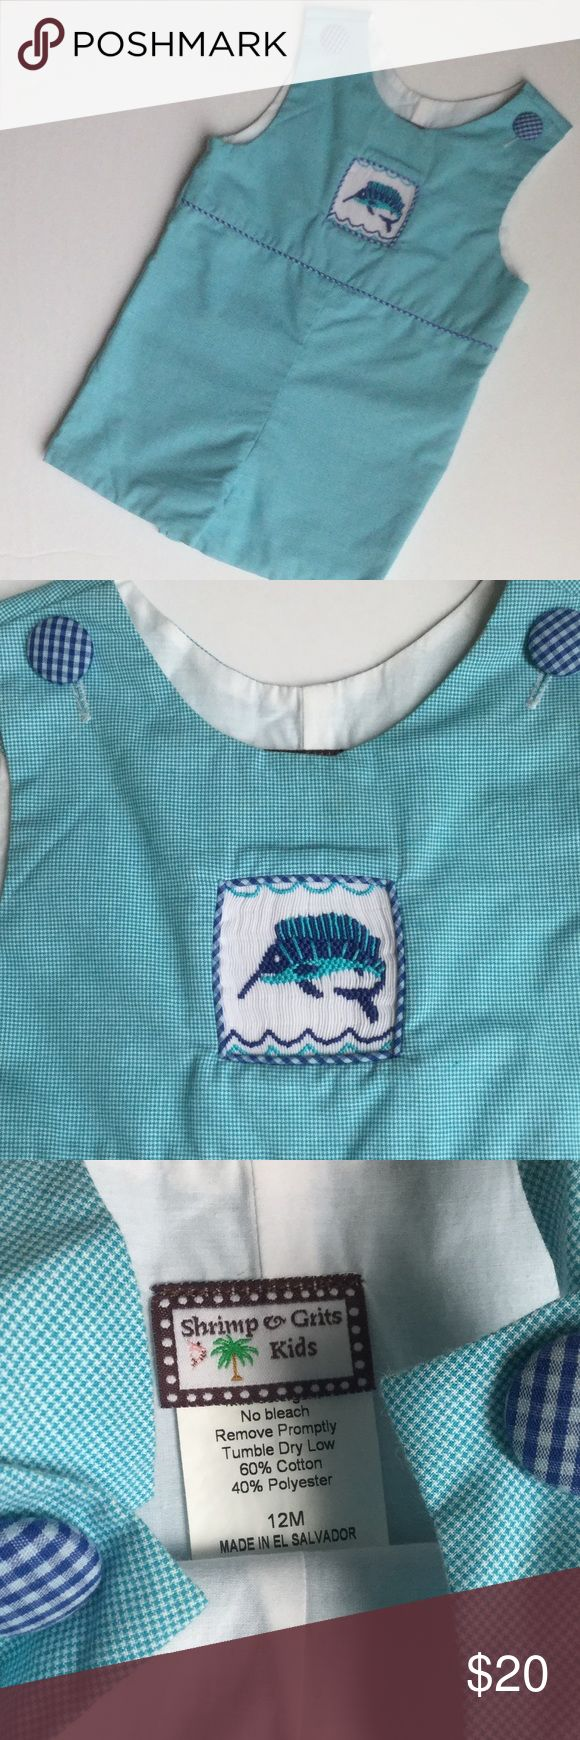 Shrimp and grits kids shortall Beautiful blue checked shortall with complimenting buttons & waist trim, smocked marlin. Shrimp and grits kids. Size 12 months. Check out other listings, bundle and save! Shrimp & Grits Kids  One Pieces